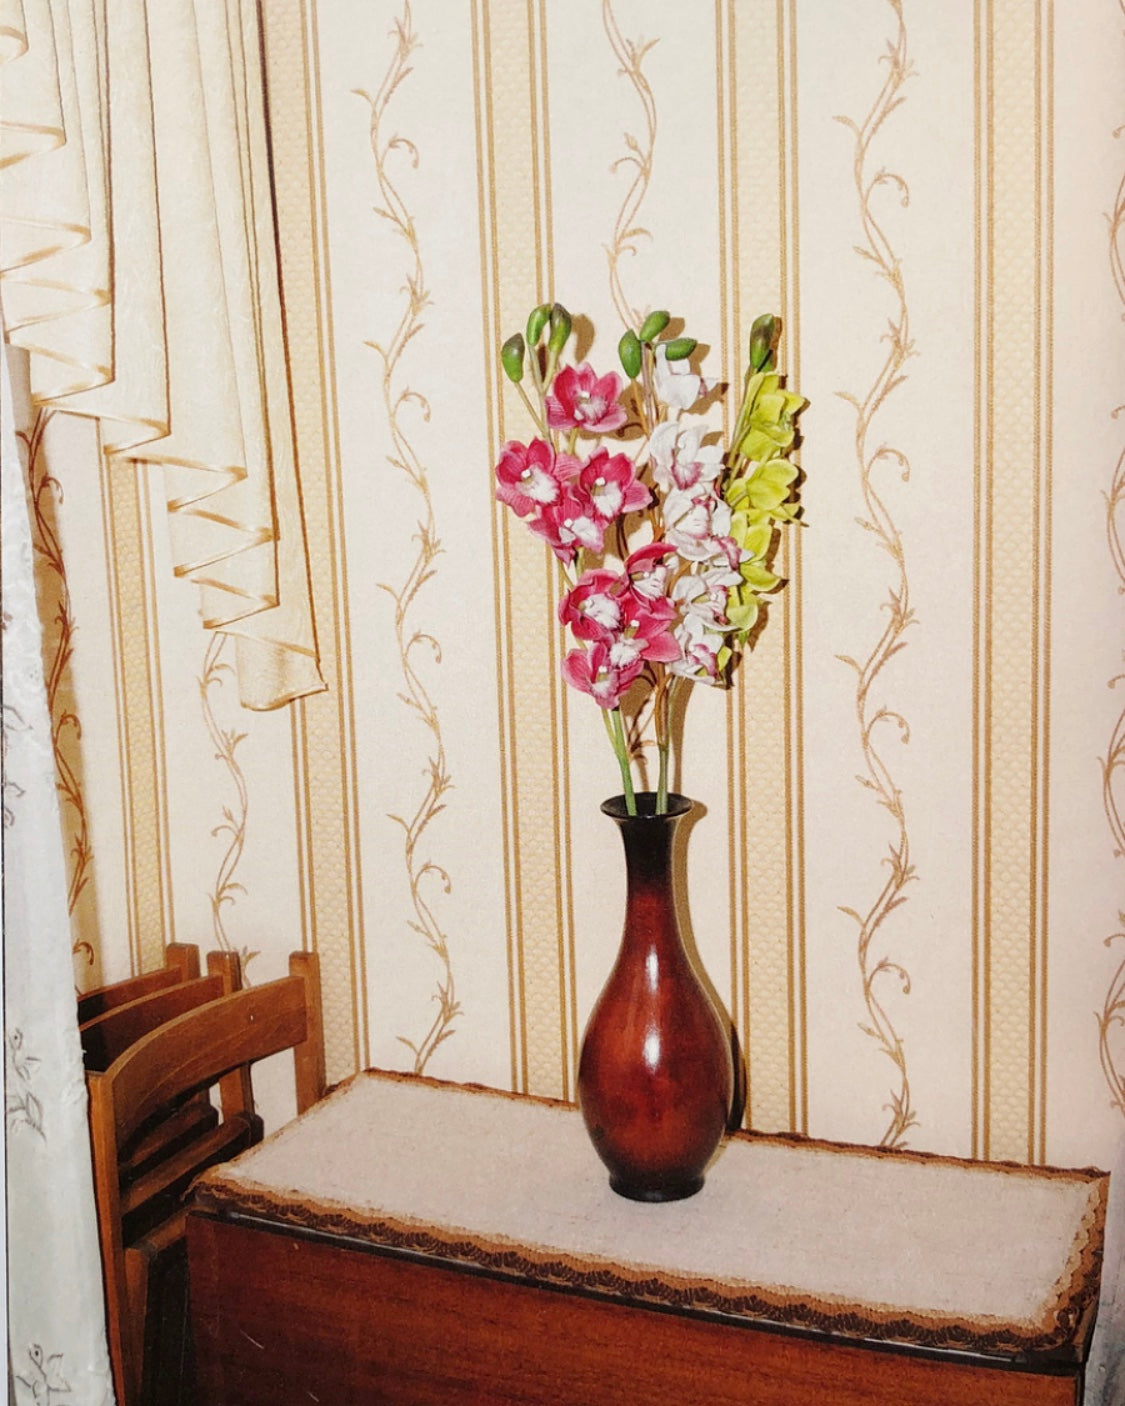 Andy Rochelli: Russian Interiors